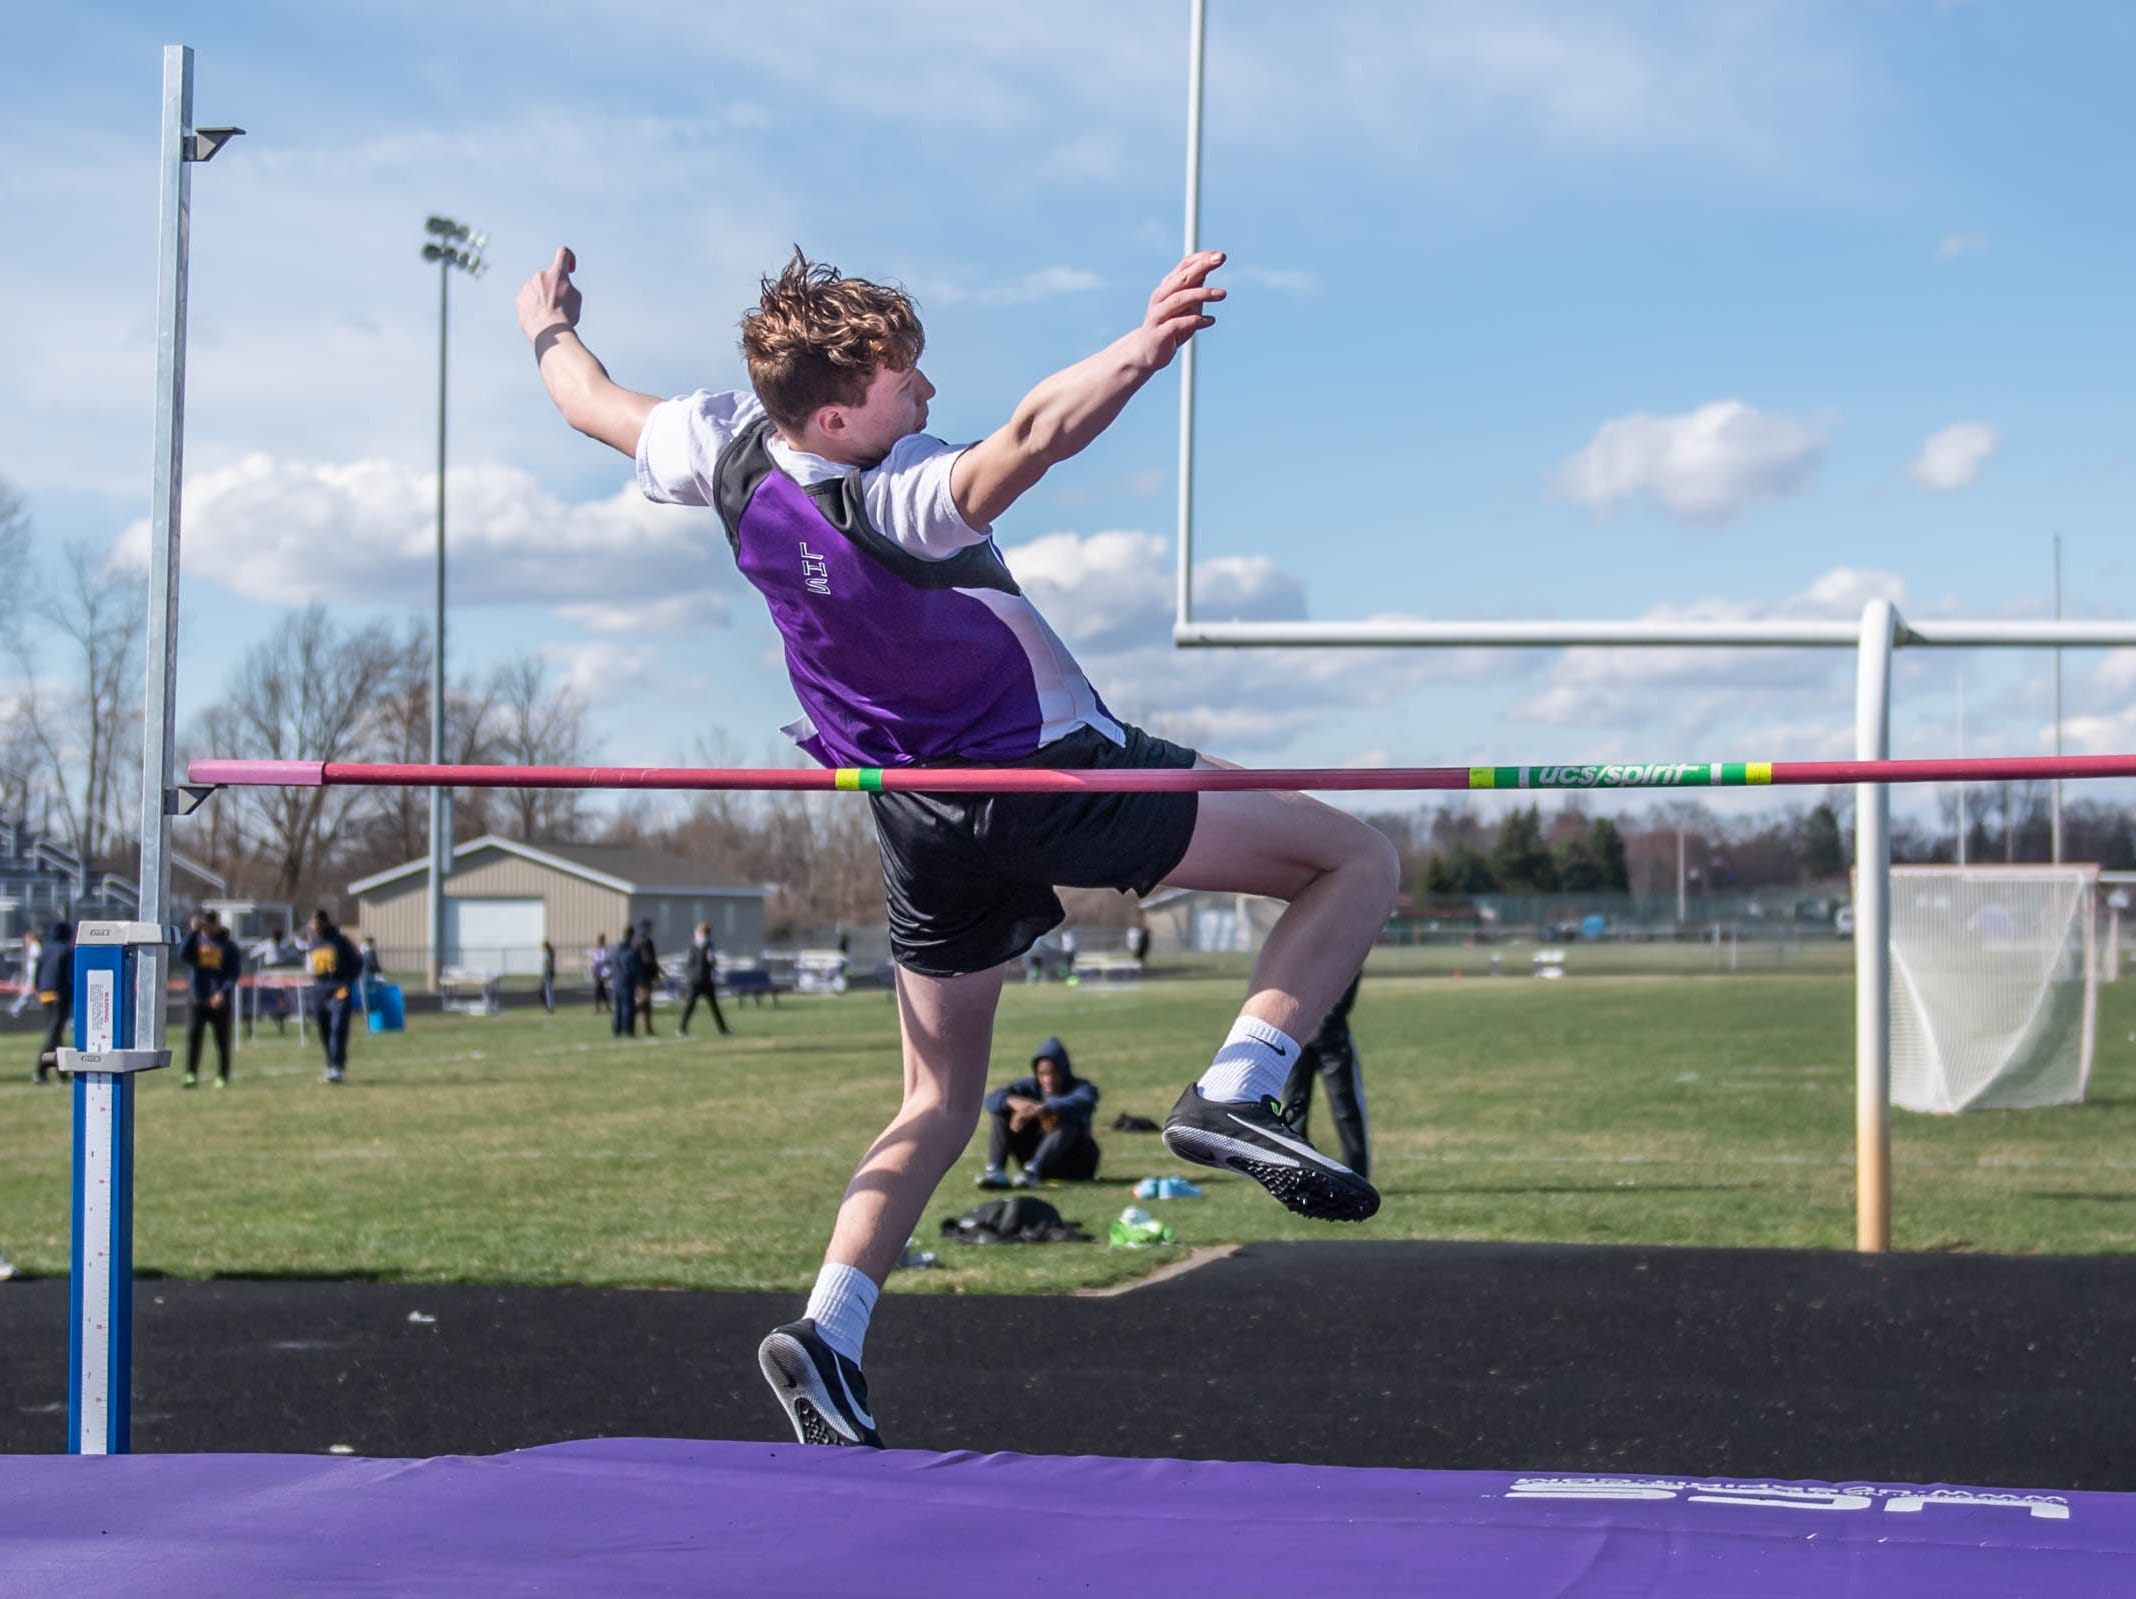 Lakeview's Drake Morris competes in the high jump at Lakeview High School during a dual meet held on 4/9/19.